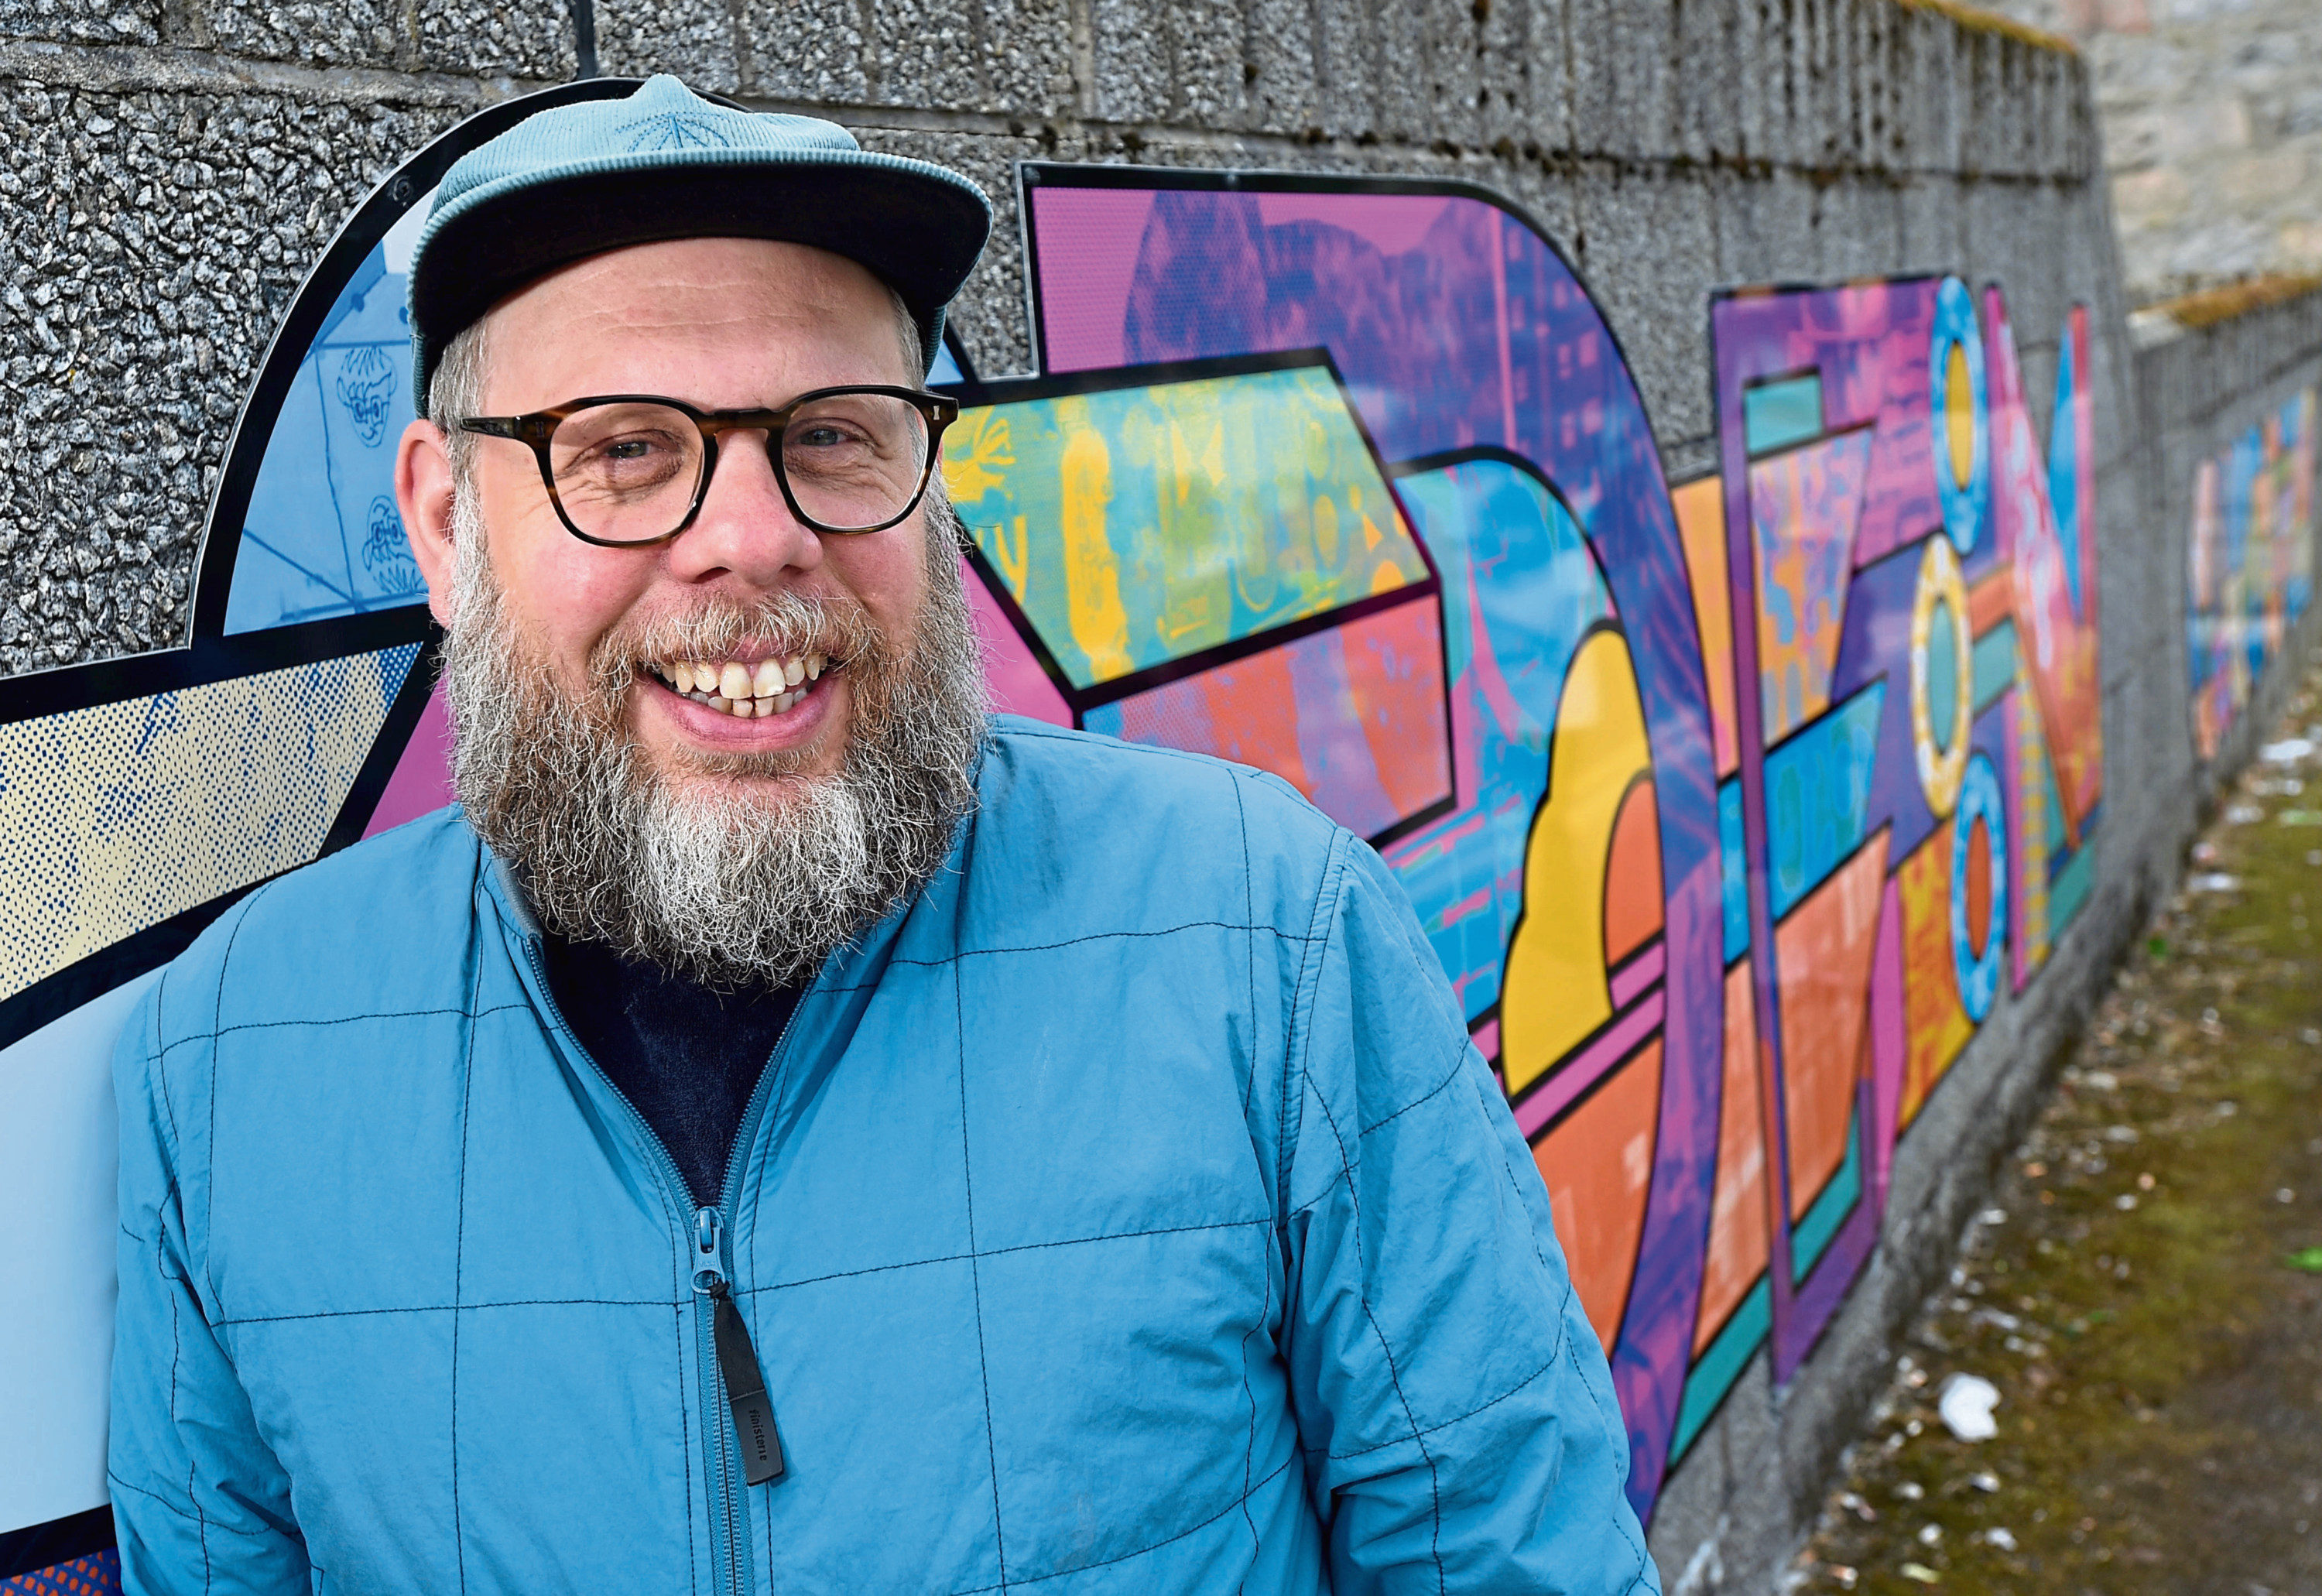 Artist Supermundane, aka Rob Lowe, with his SuperAberdeen mural marking the start of the 2018 Look Again Festival.